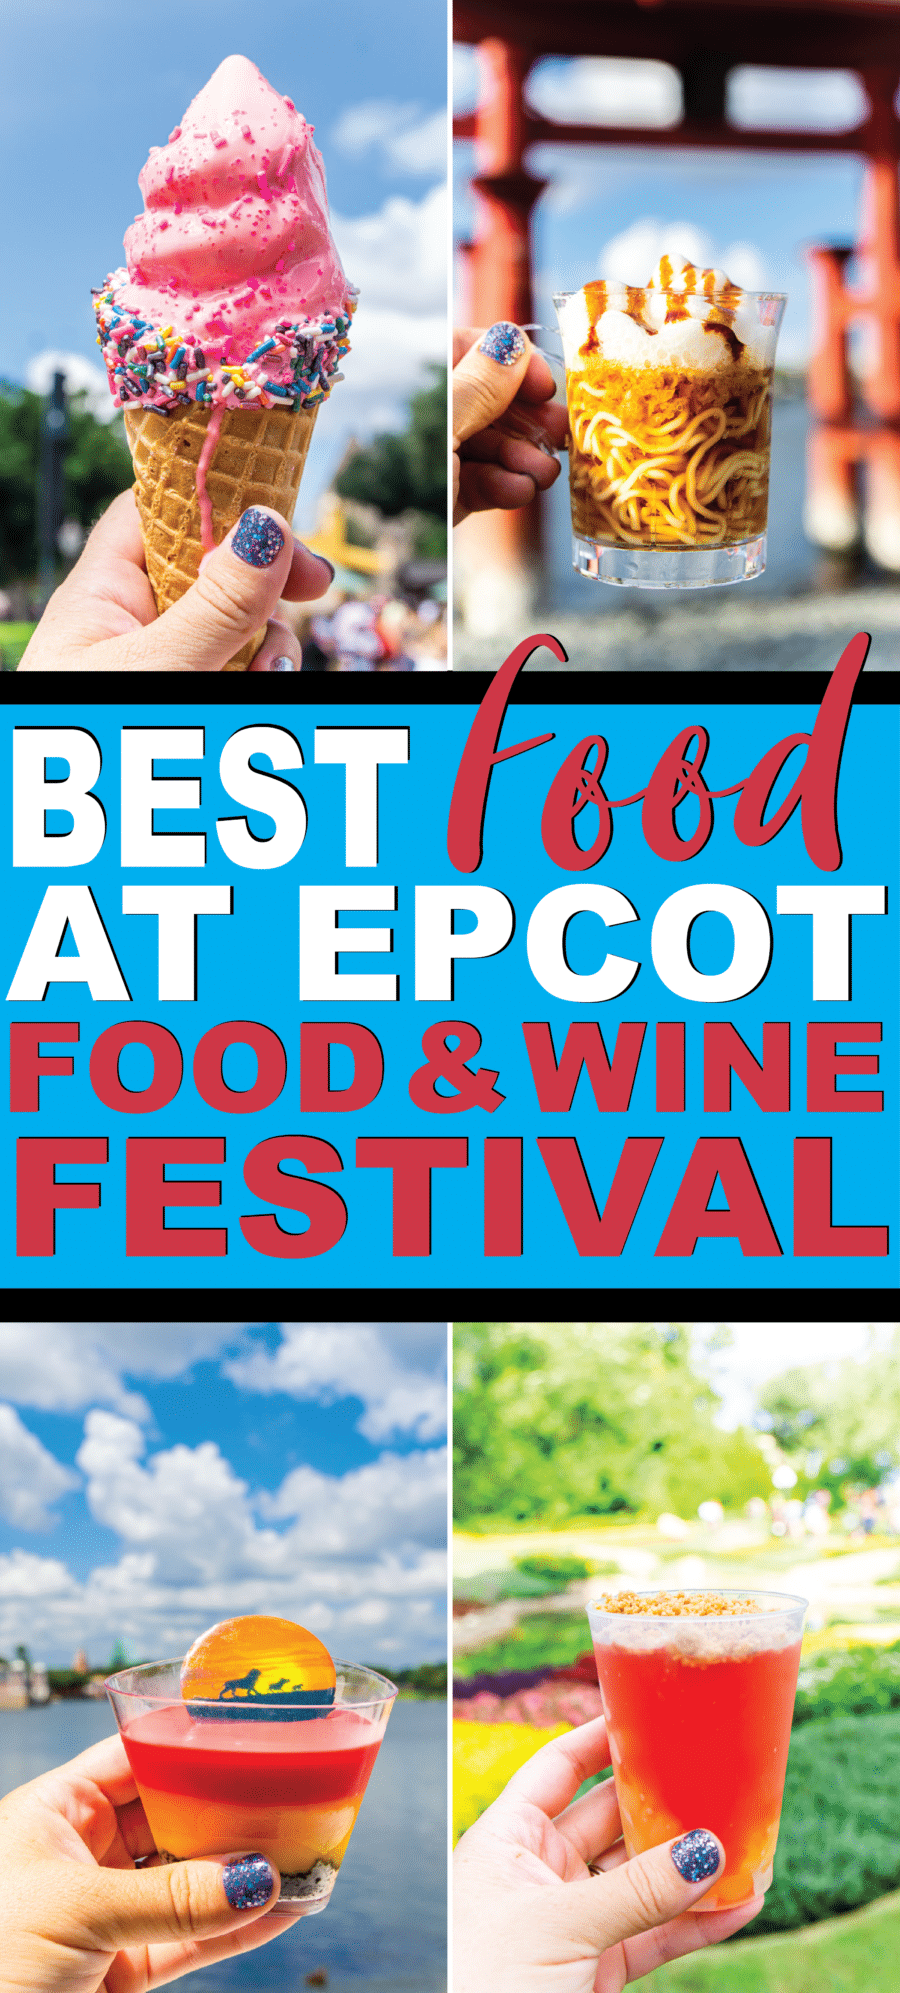 Pictures and reviews of everything on the Epcot Food and Wine Festival 2019 menu! A top 10 list of things you must-try when you go to Disney's food and wine festival - 10 savory dishes and 10 desserts! It's the ultimate guide to the food at Disney's Food and Wine Festival 2019!